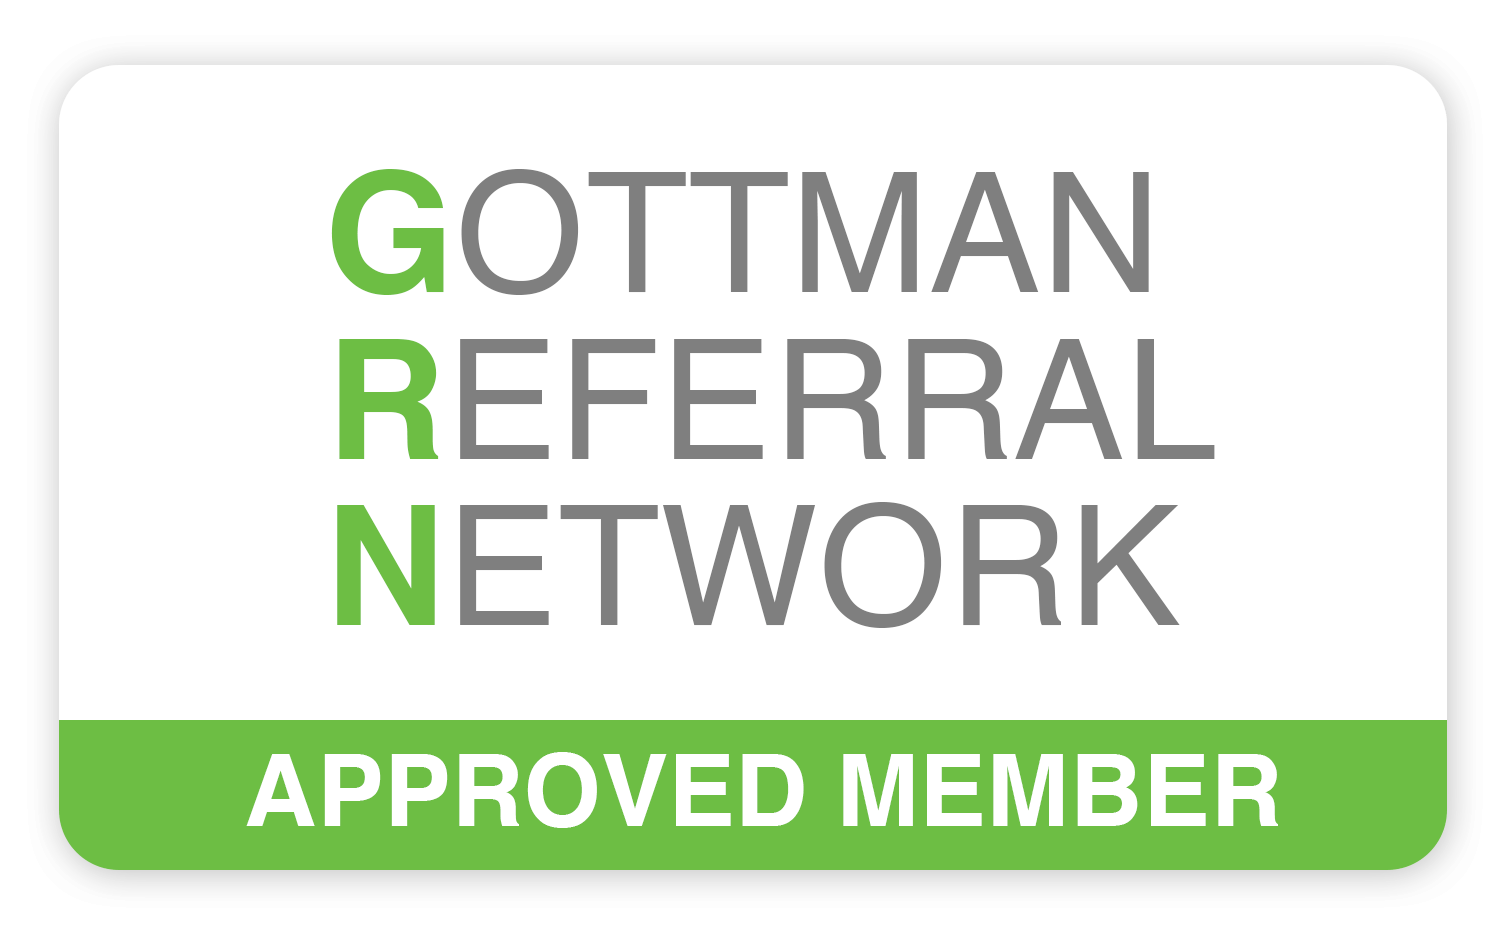 Gottman Referral Network for the Gottman Method couples therapy